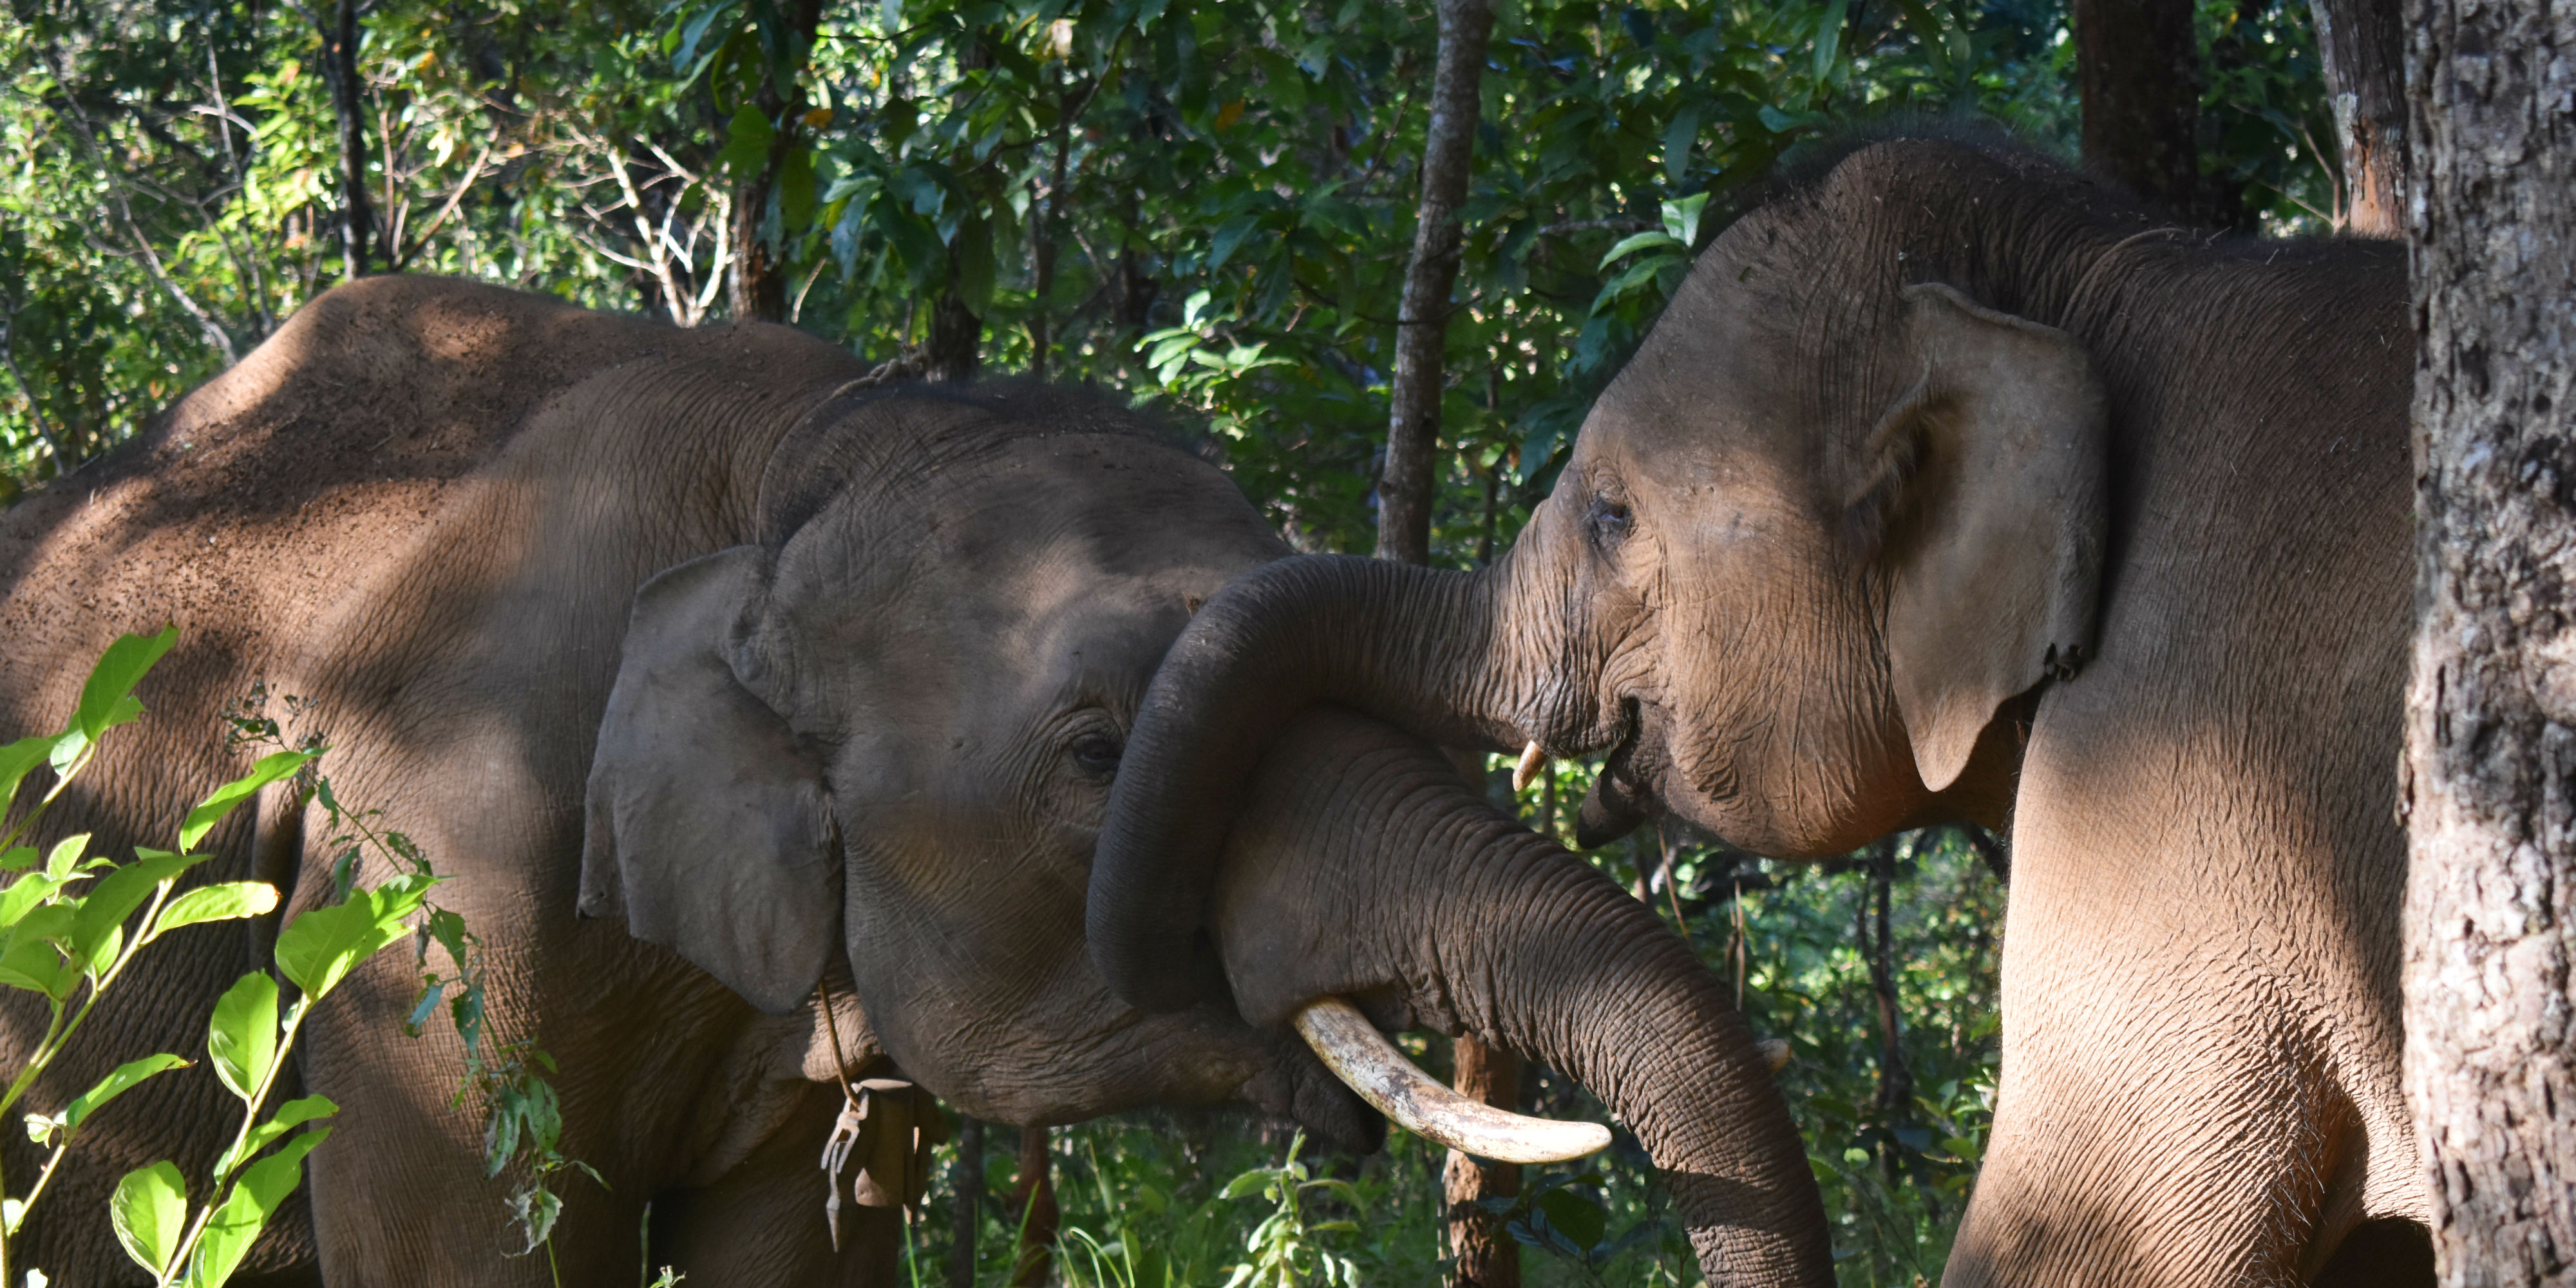 An elephant wraps its trunk around a companion. While volunteering with elephants in Thailand, GVI participants are able to witness this kind of natural behaviour first-hand.